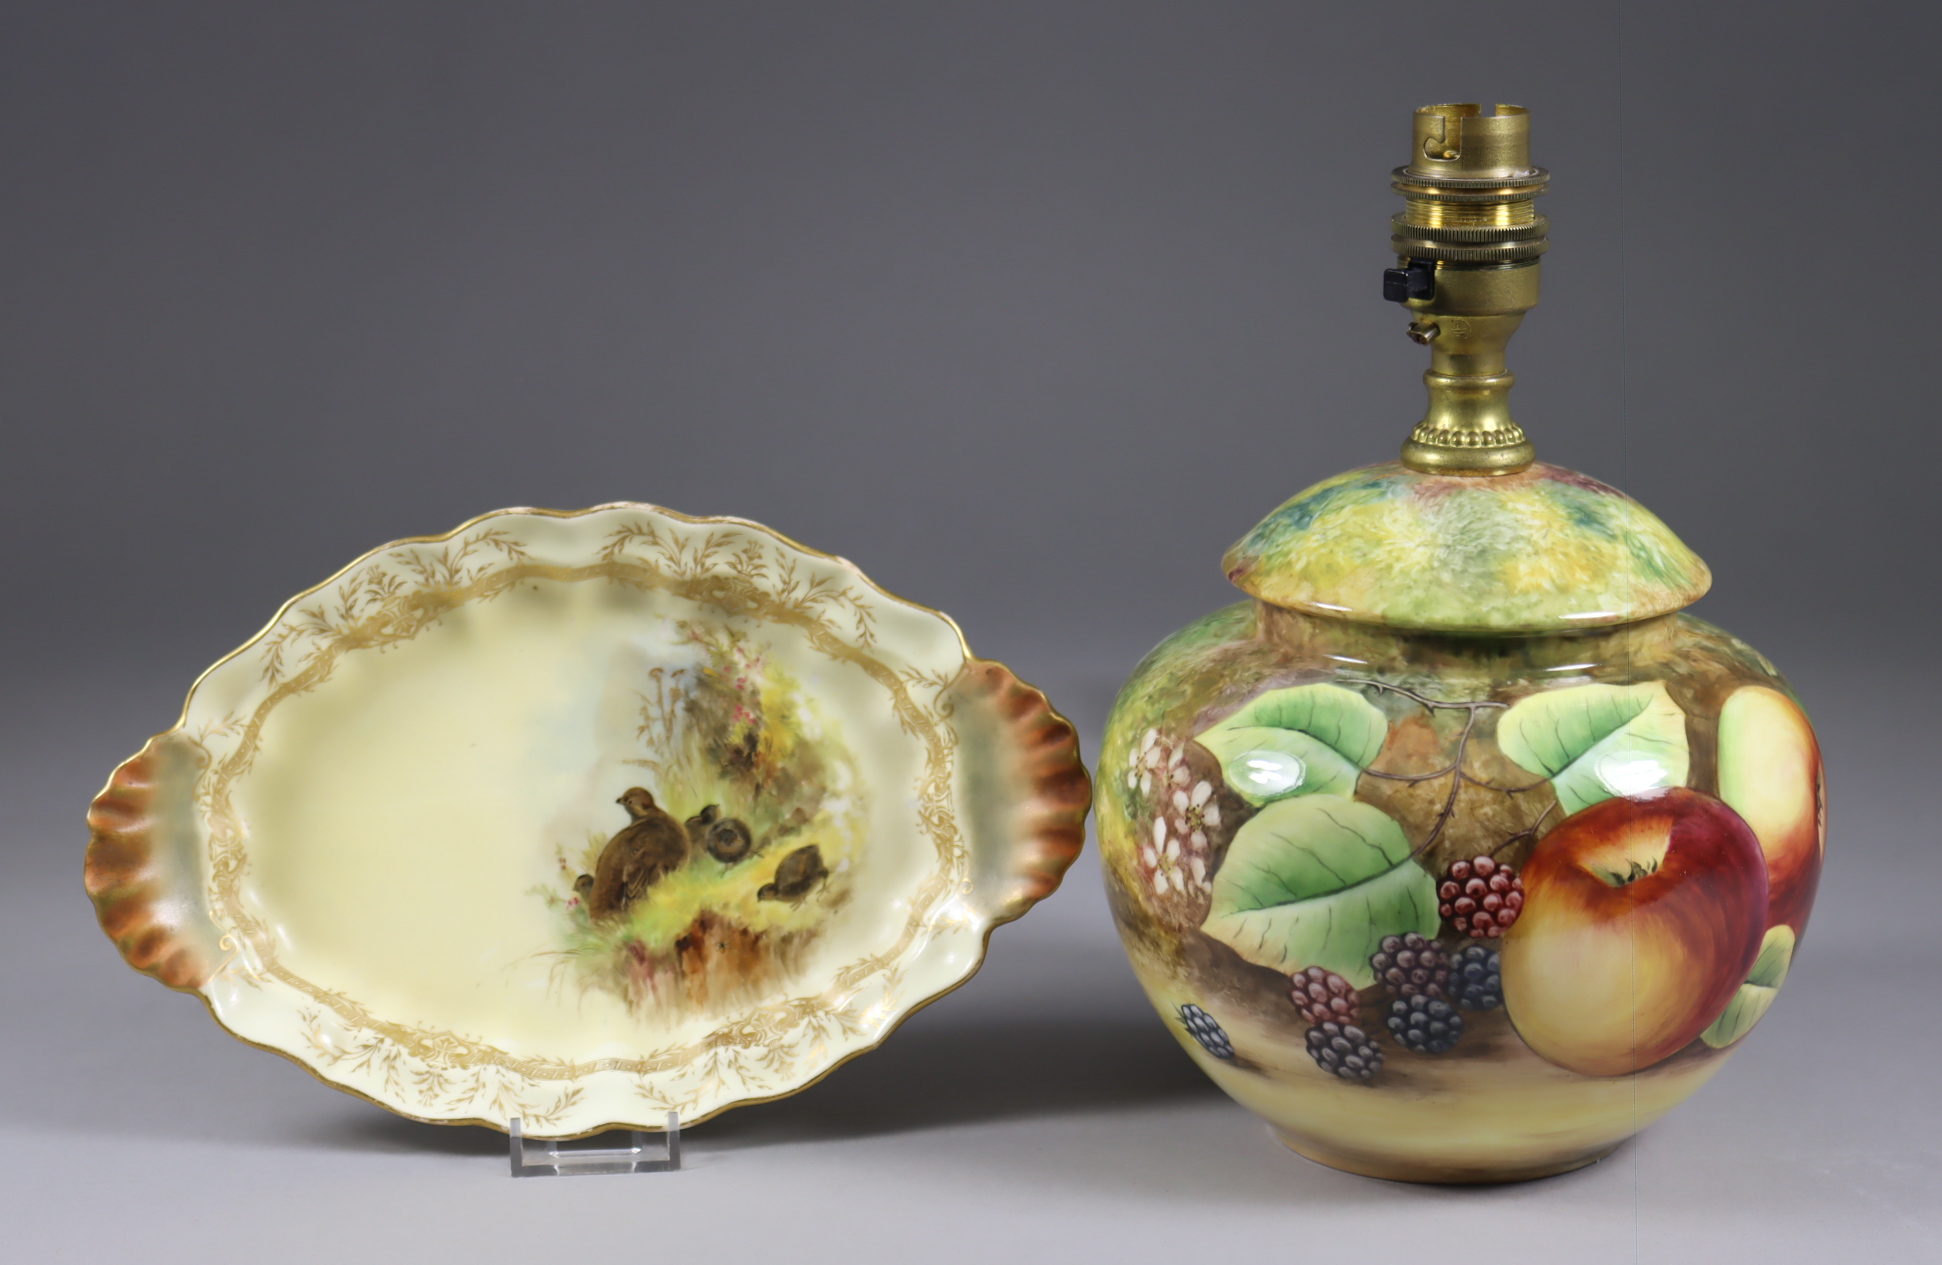 A James Skerrett Bone China Table Lamp painted with Fruit, signed, 8.75ins high, with shade, and a